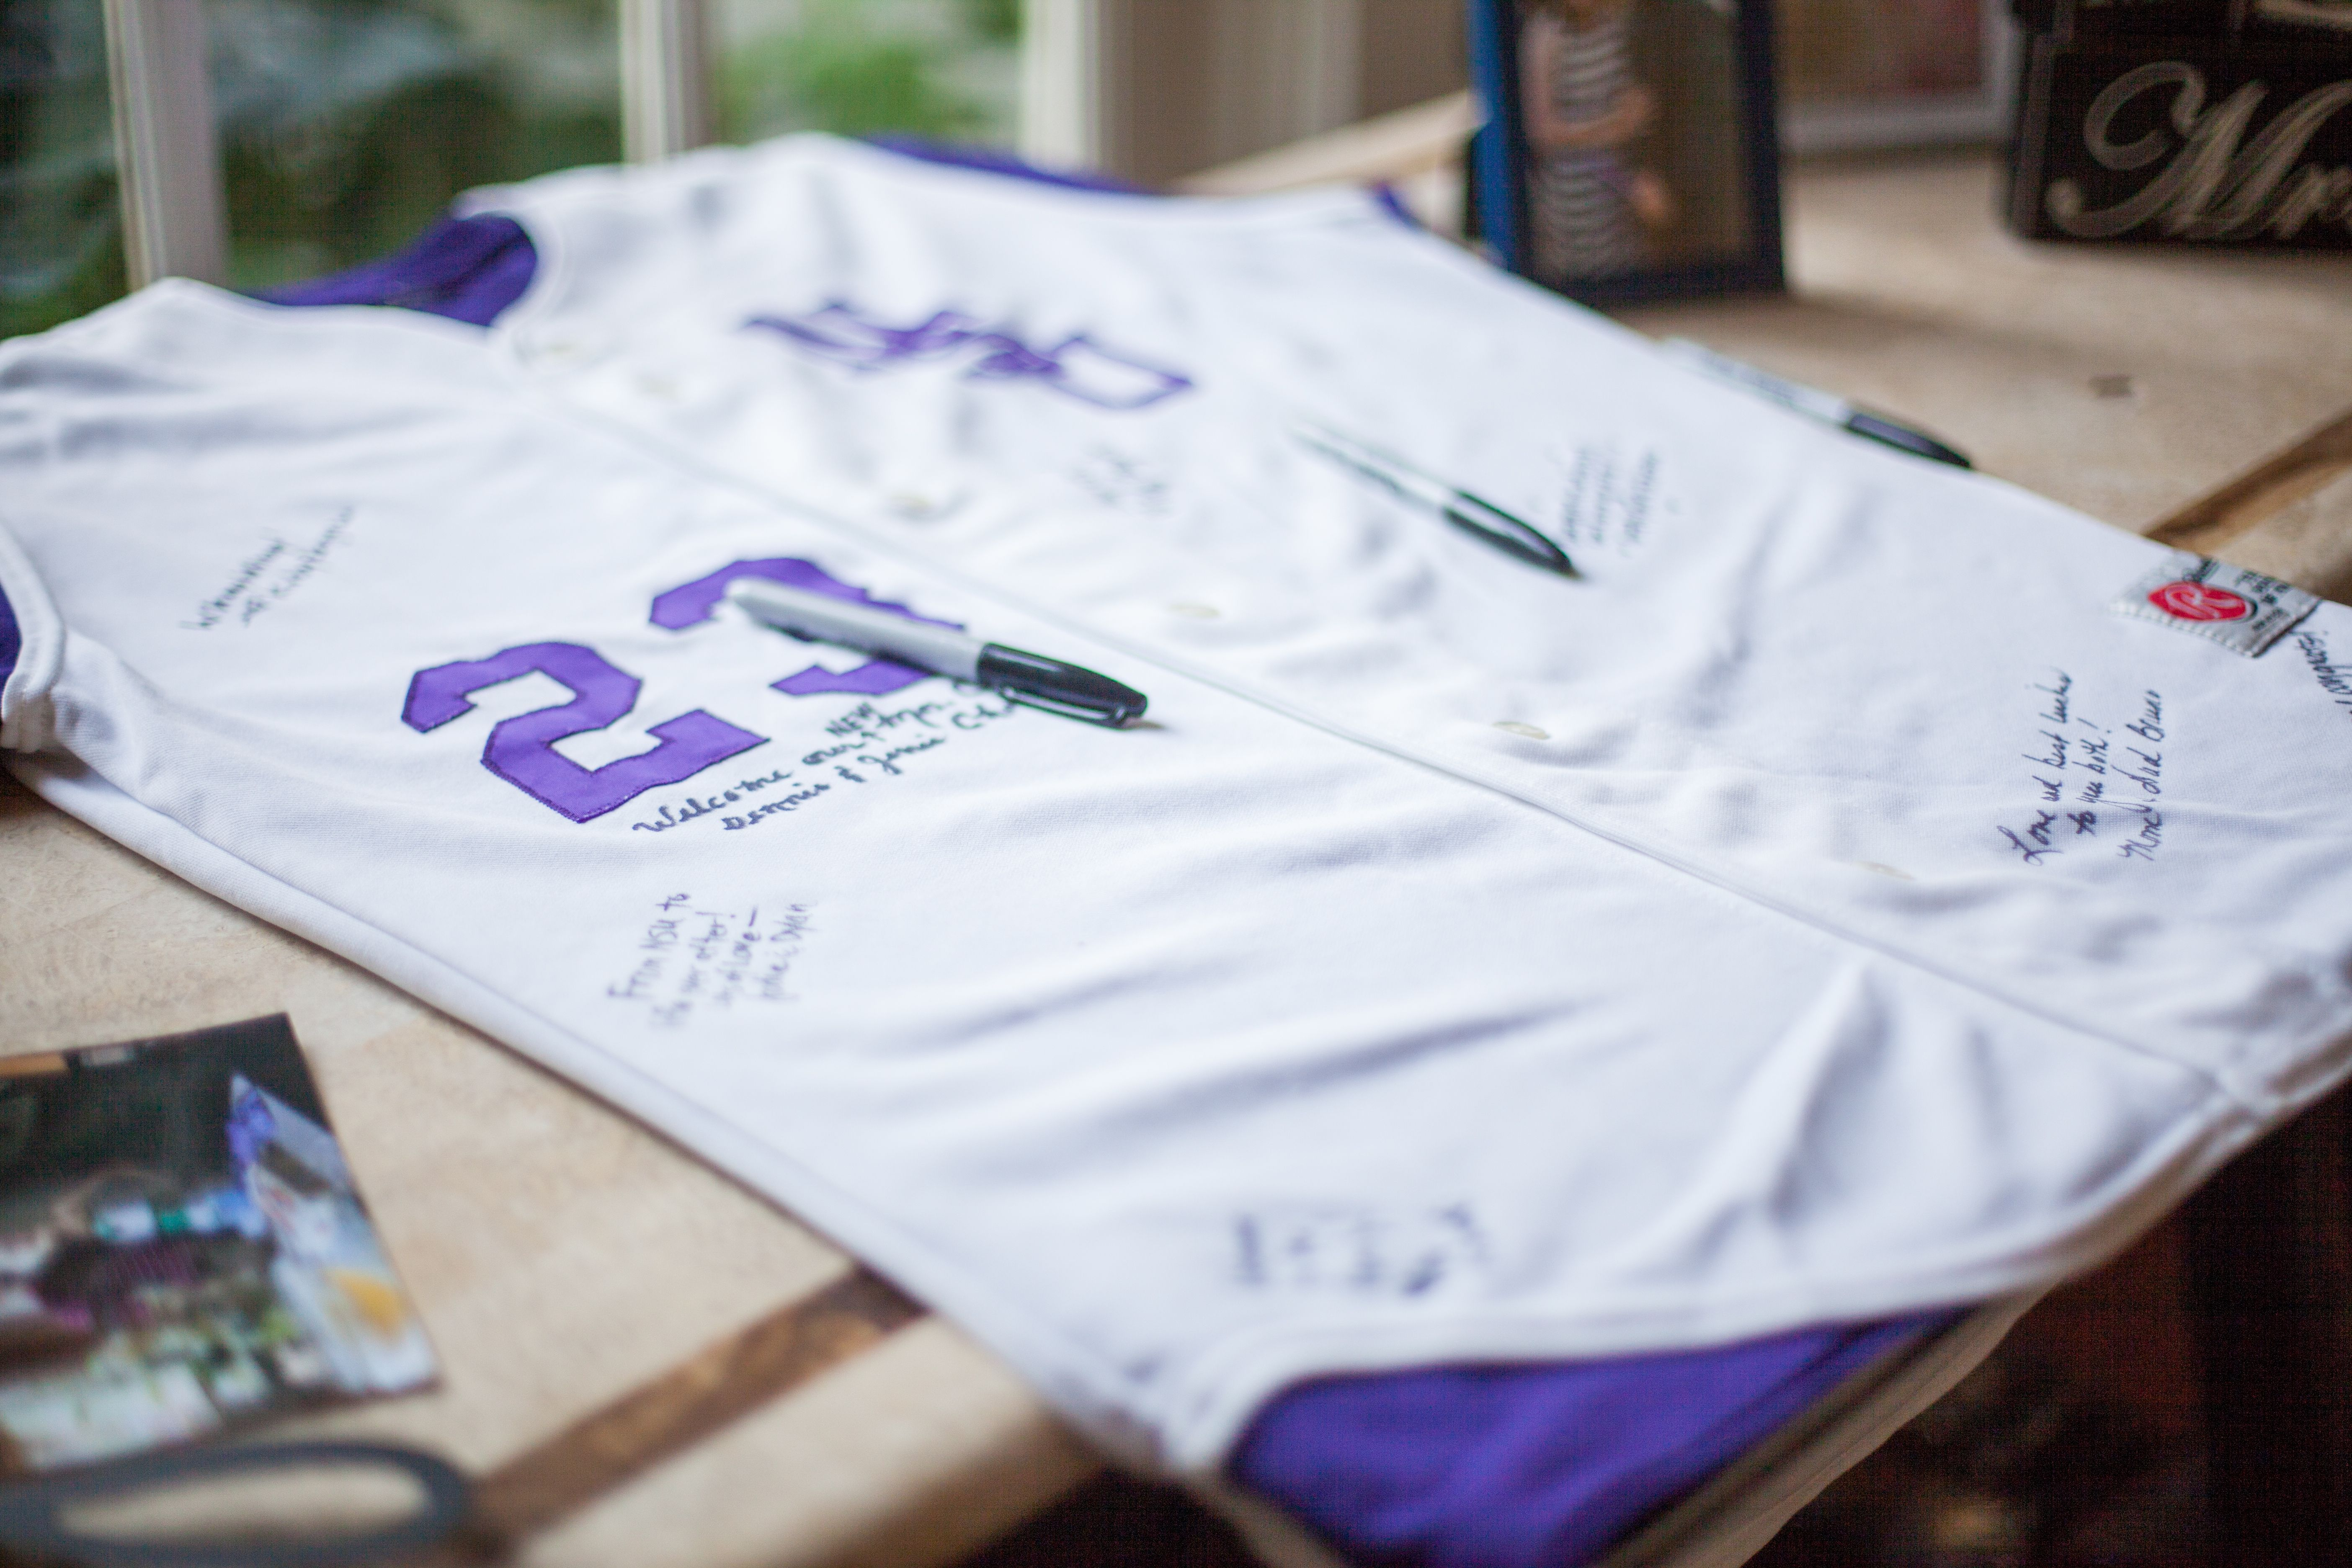 Denny played baseball and Cary played softball, so guests signed their jerseys as they walked into the reception.